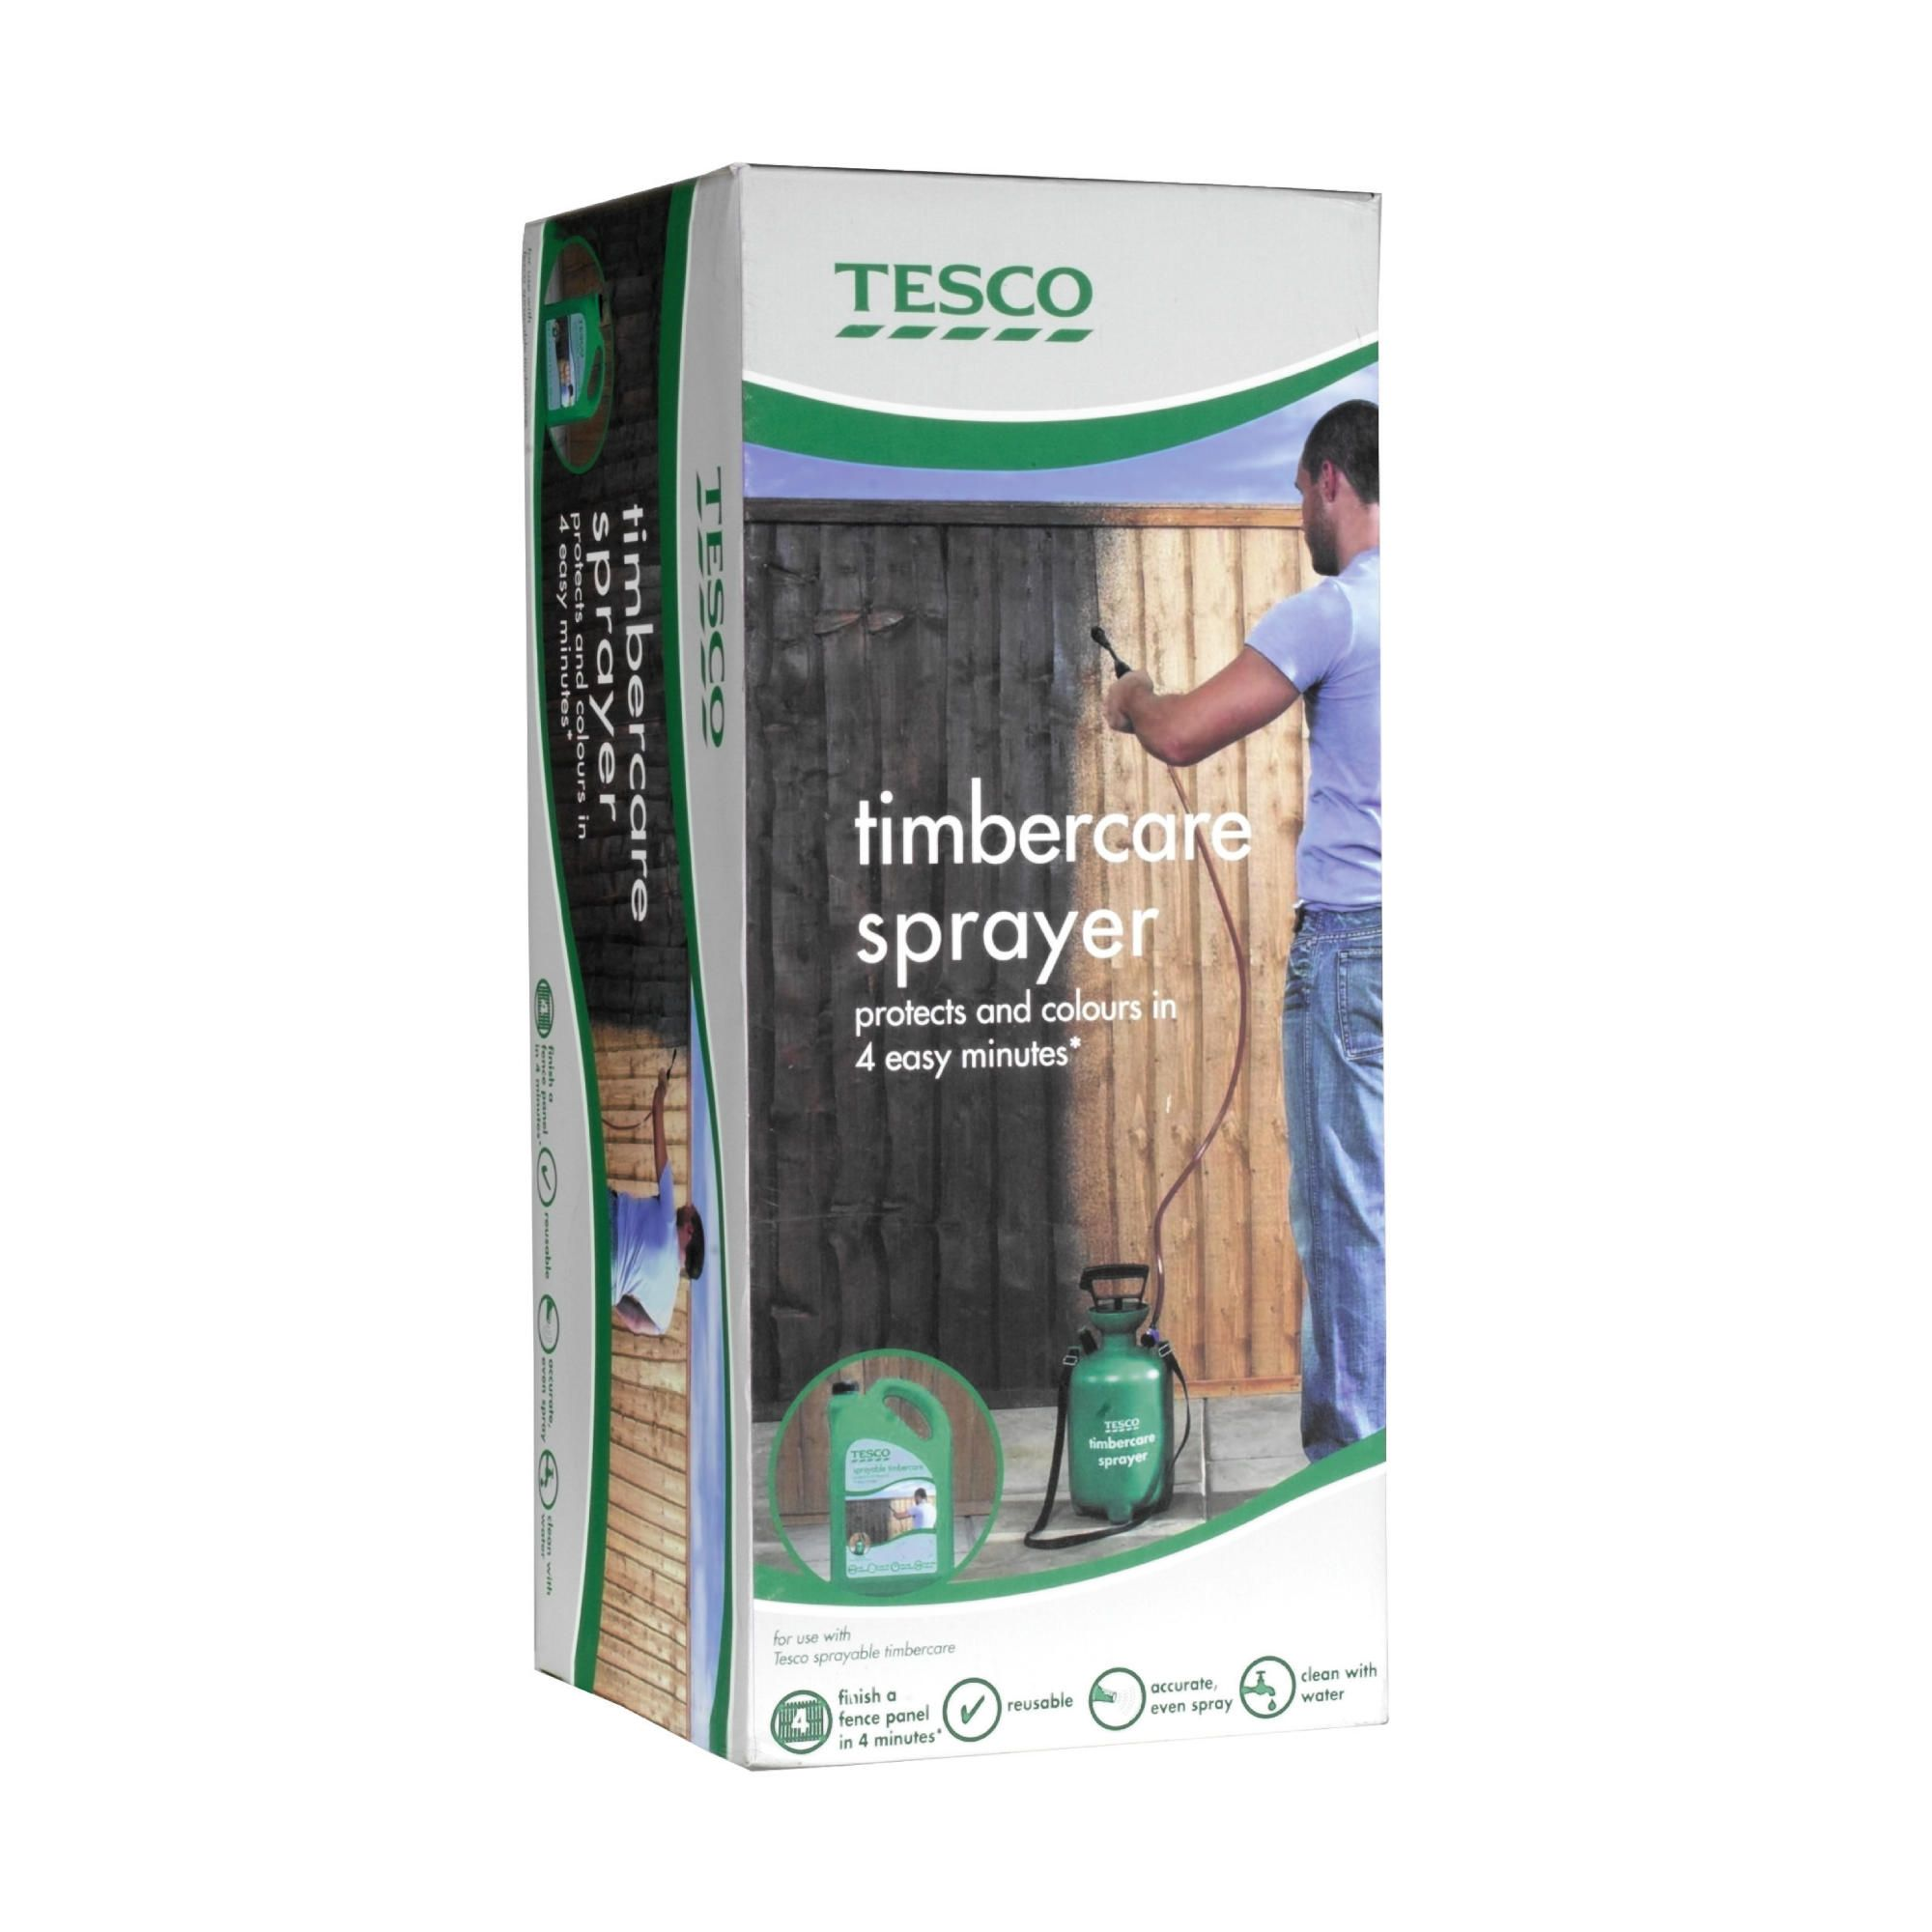 Tesco Sprayable Sprayer